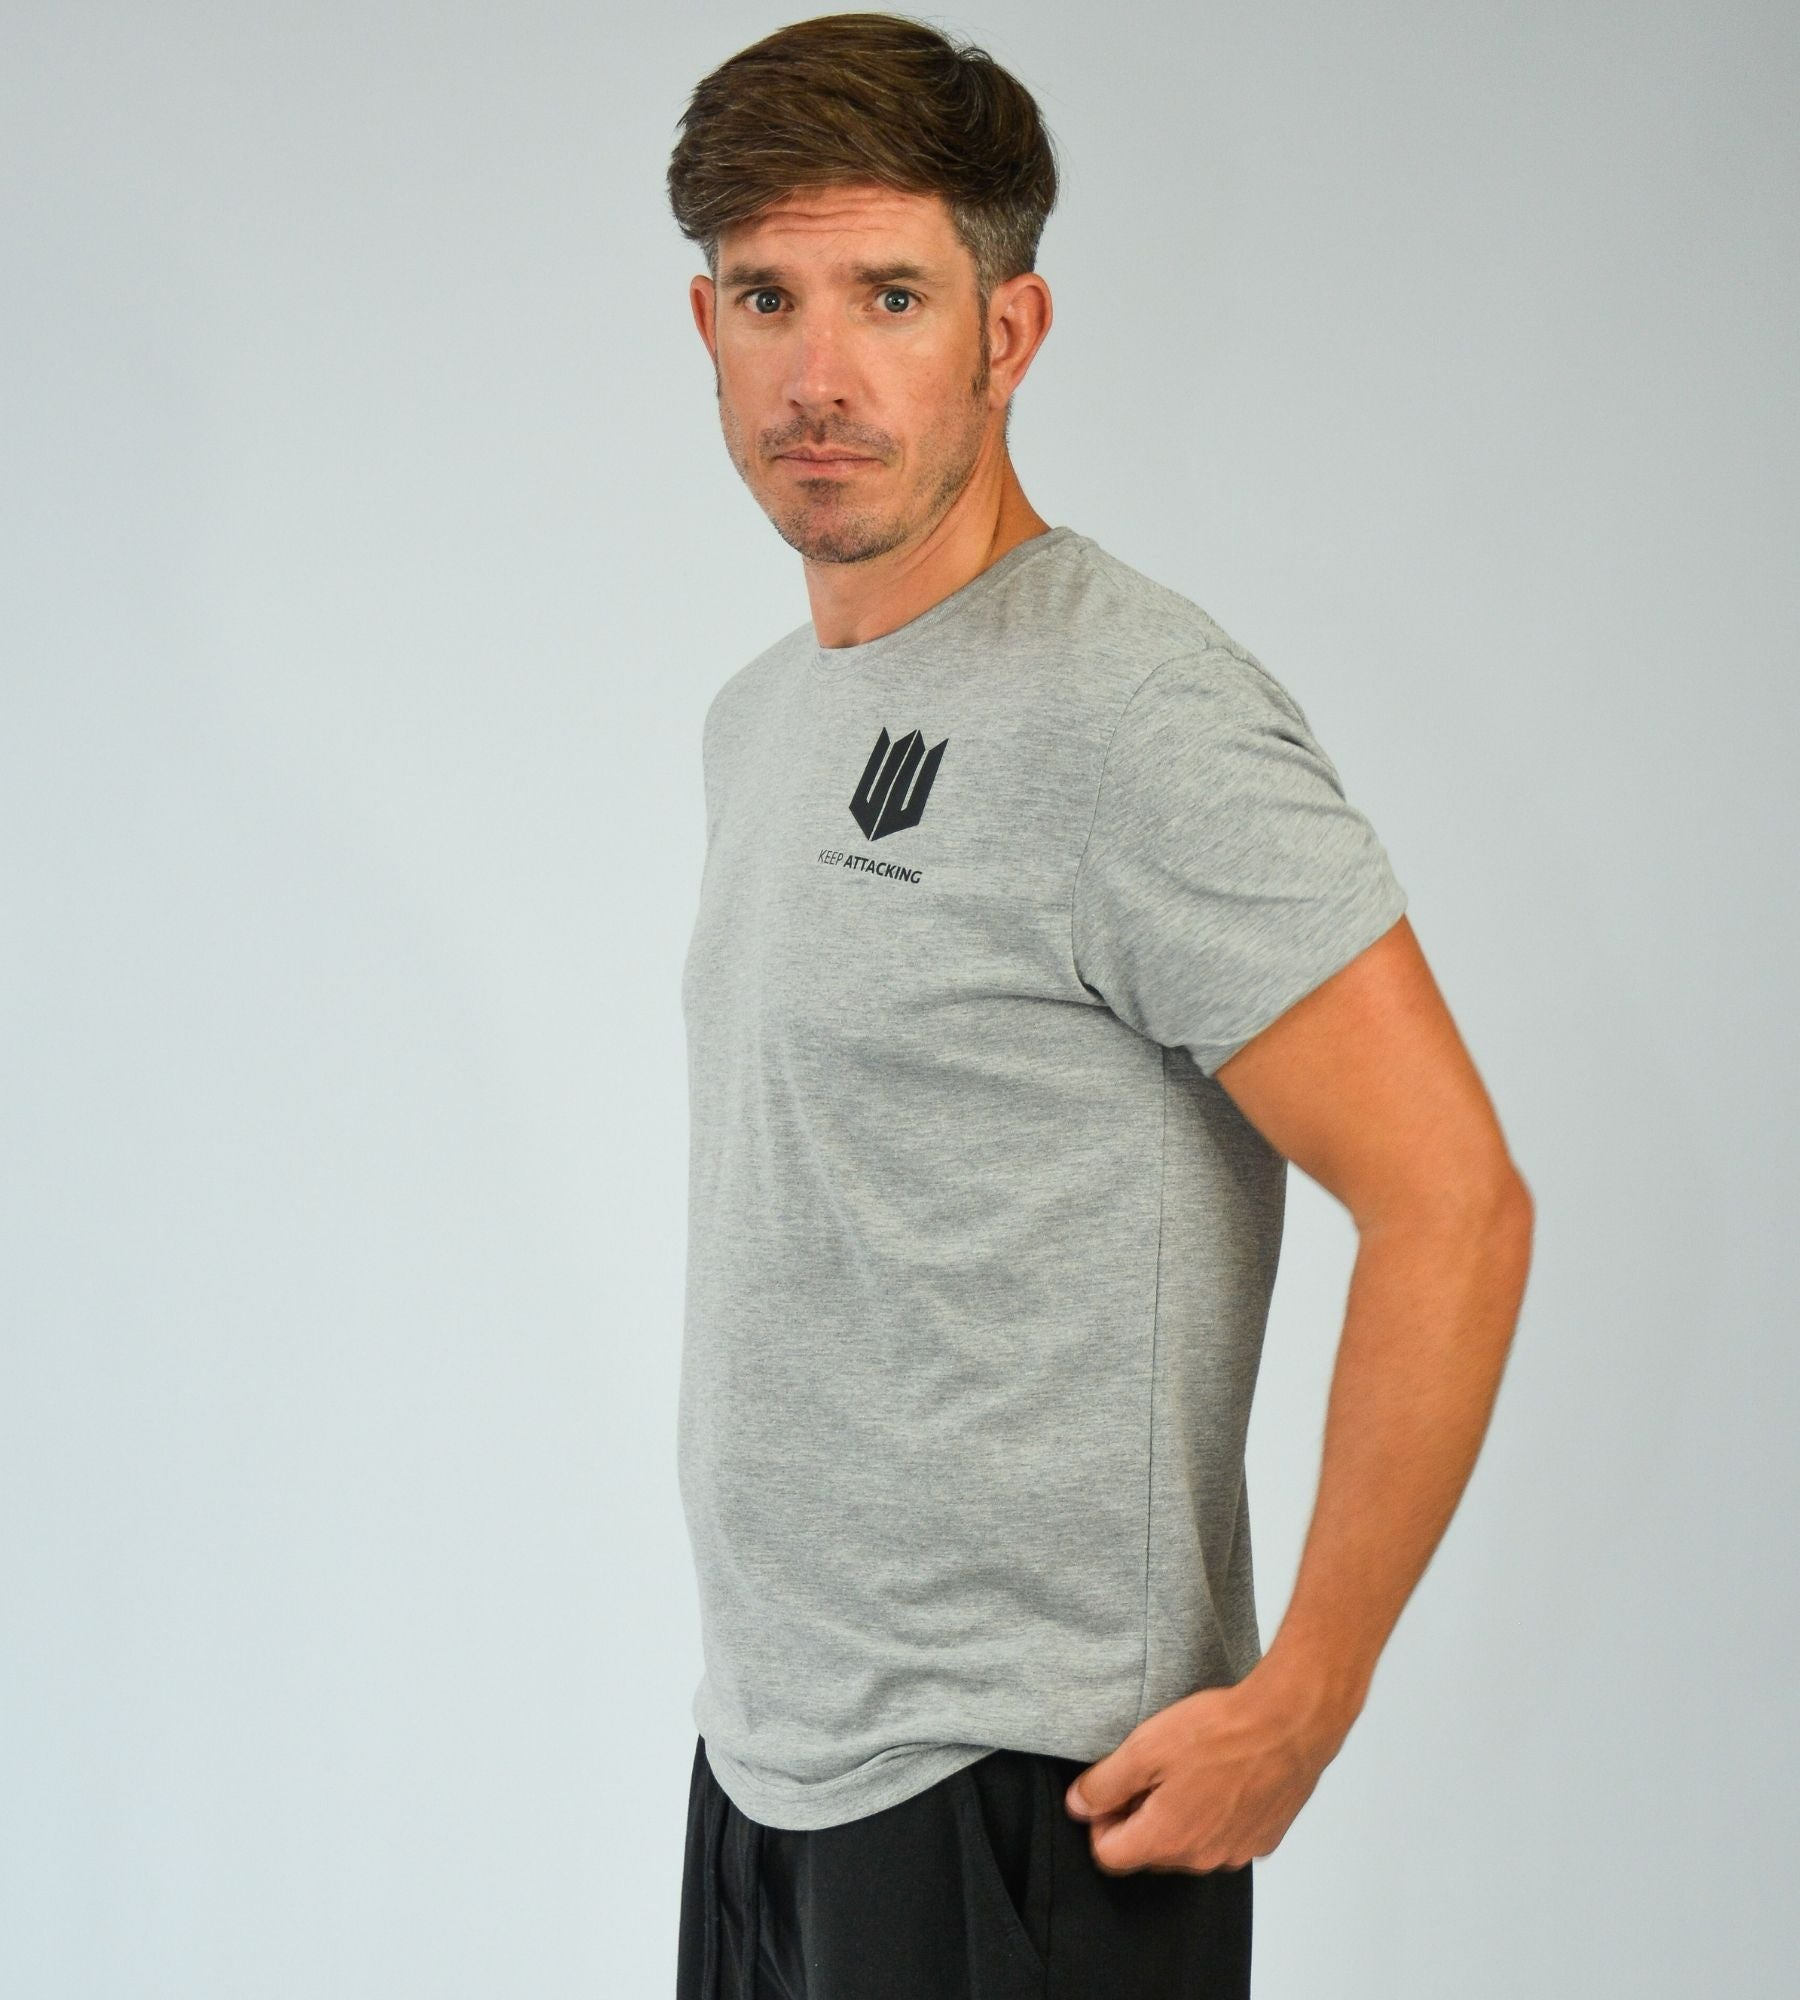 KA Mens Emblem T-Shirt Grey Black side